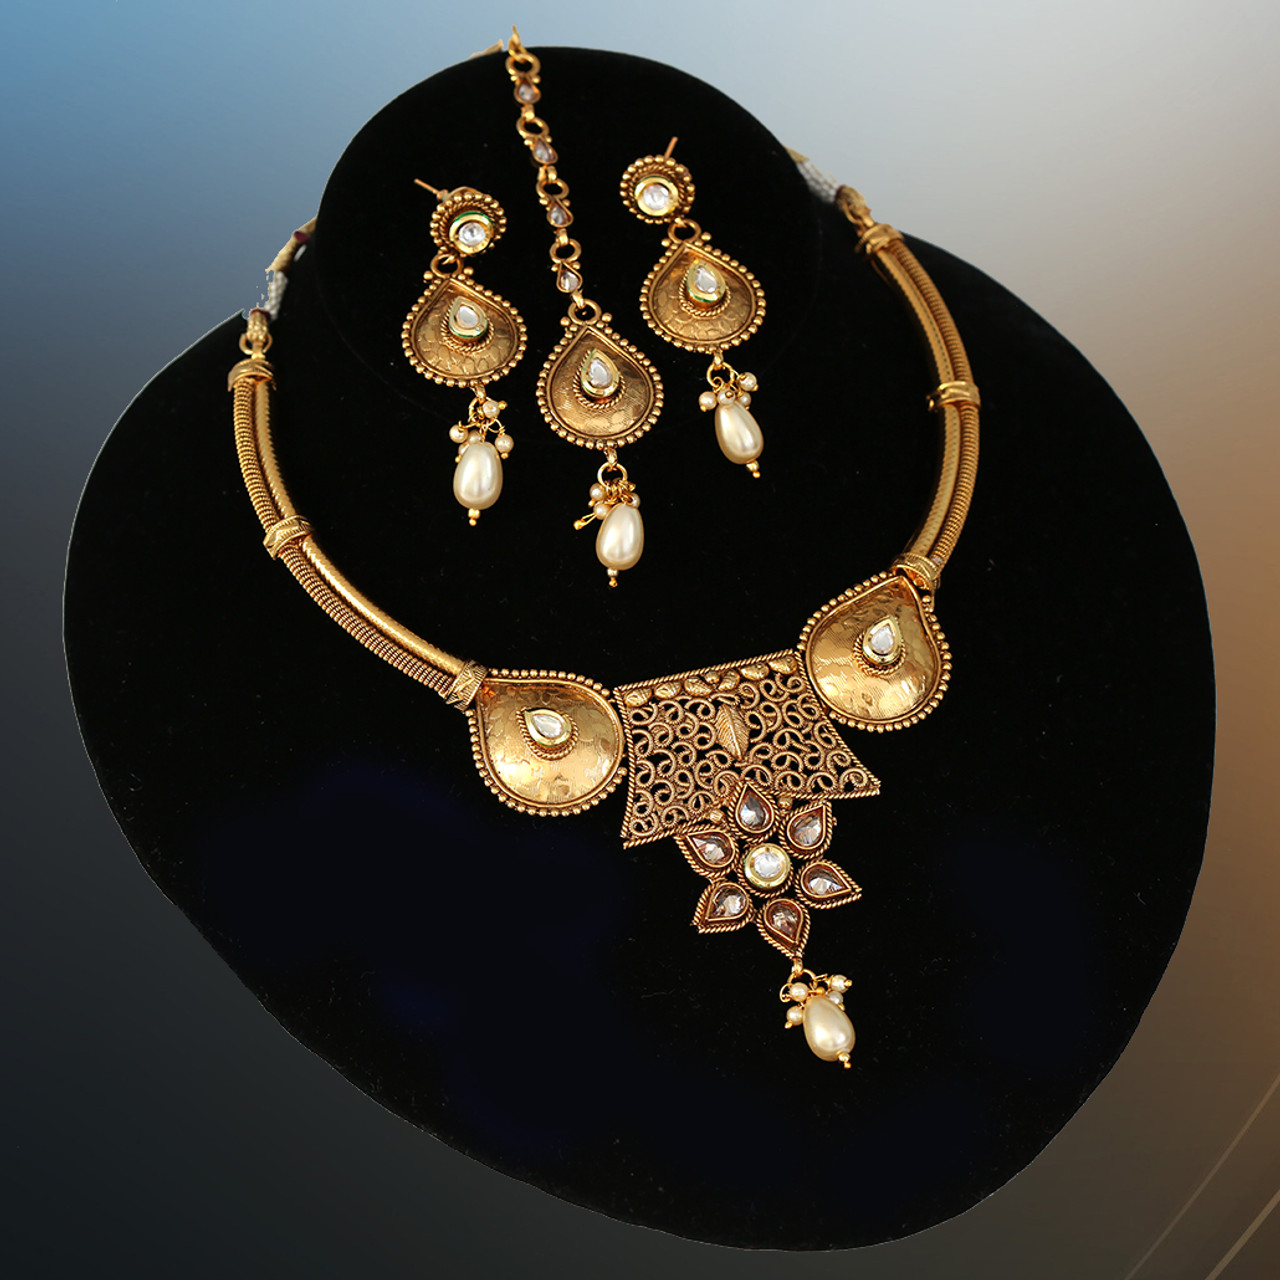 Beautiful Party Wear Matte Finish Topaz Kundan Choker Gold Imitation Jewellery Set India Bridal & Wedding Party Jewelry